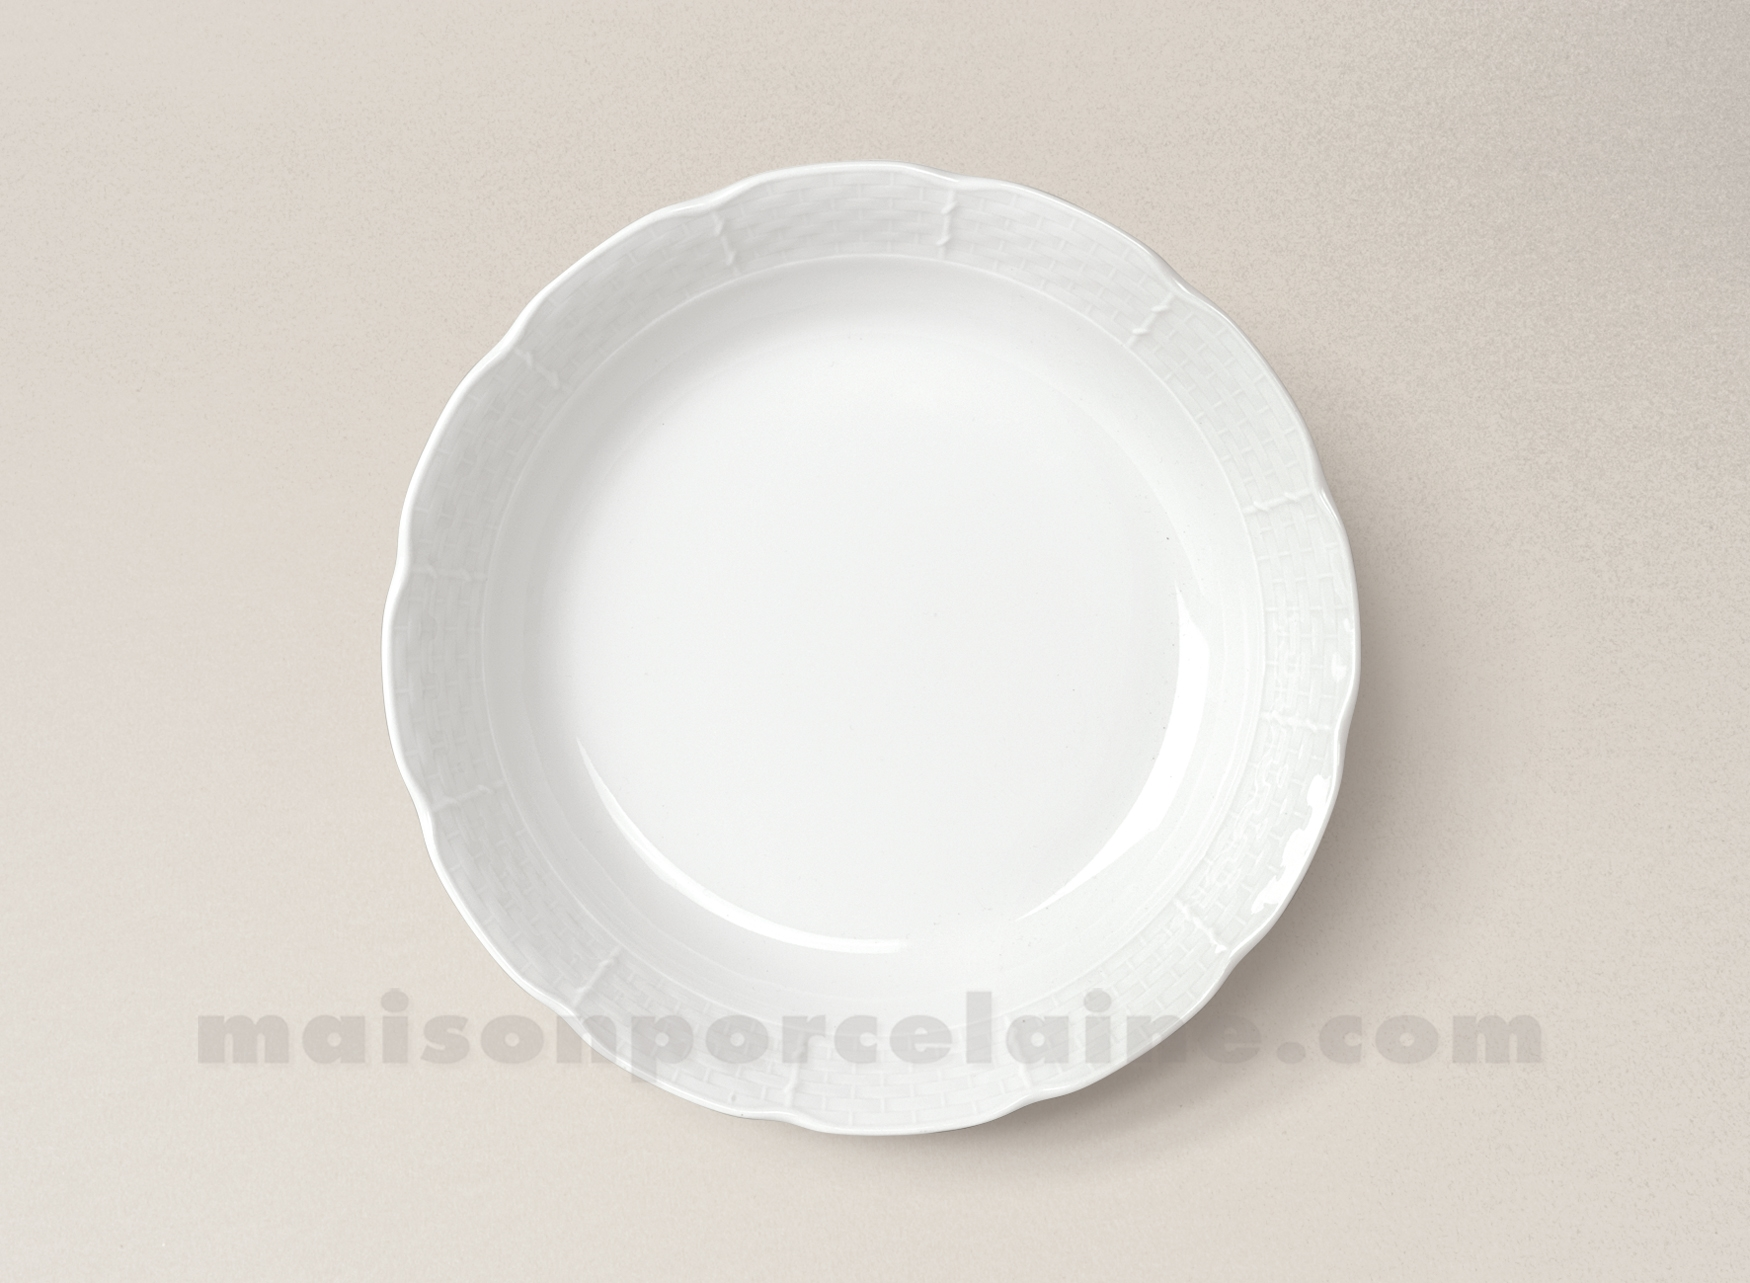 Assiette creuse calotte porcelaine blanche natacha d19 for Maison de la porcelaine